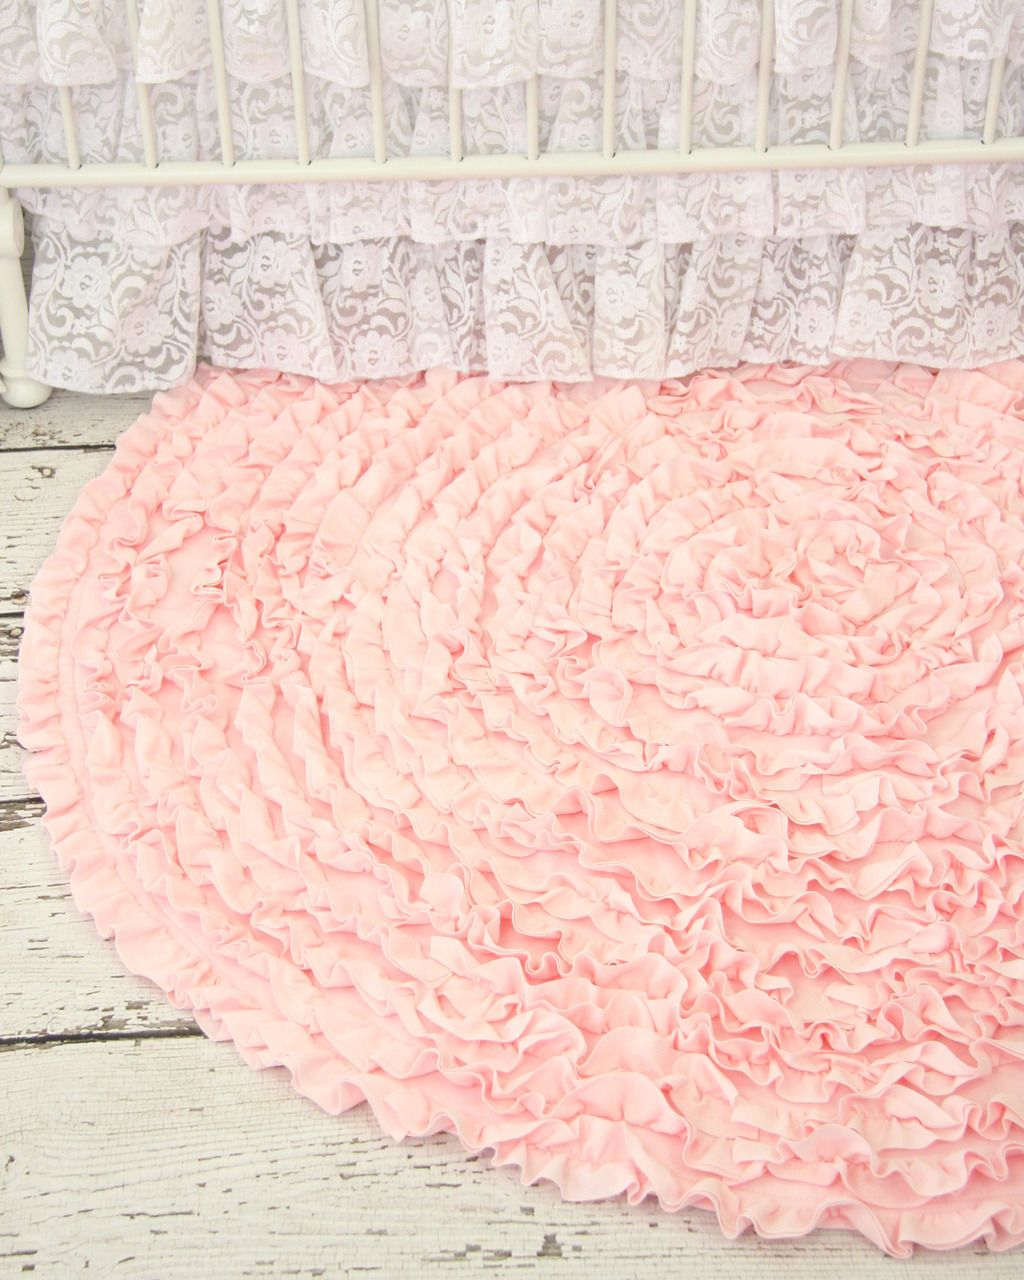 How Sweet Is This Ruffle Rug For A Pink Vintage Inspired